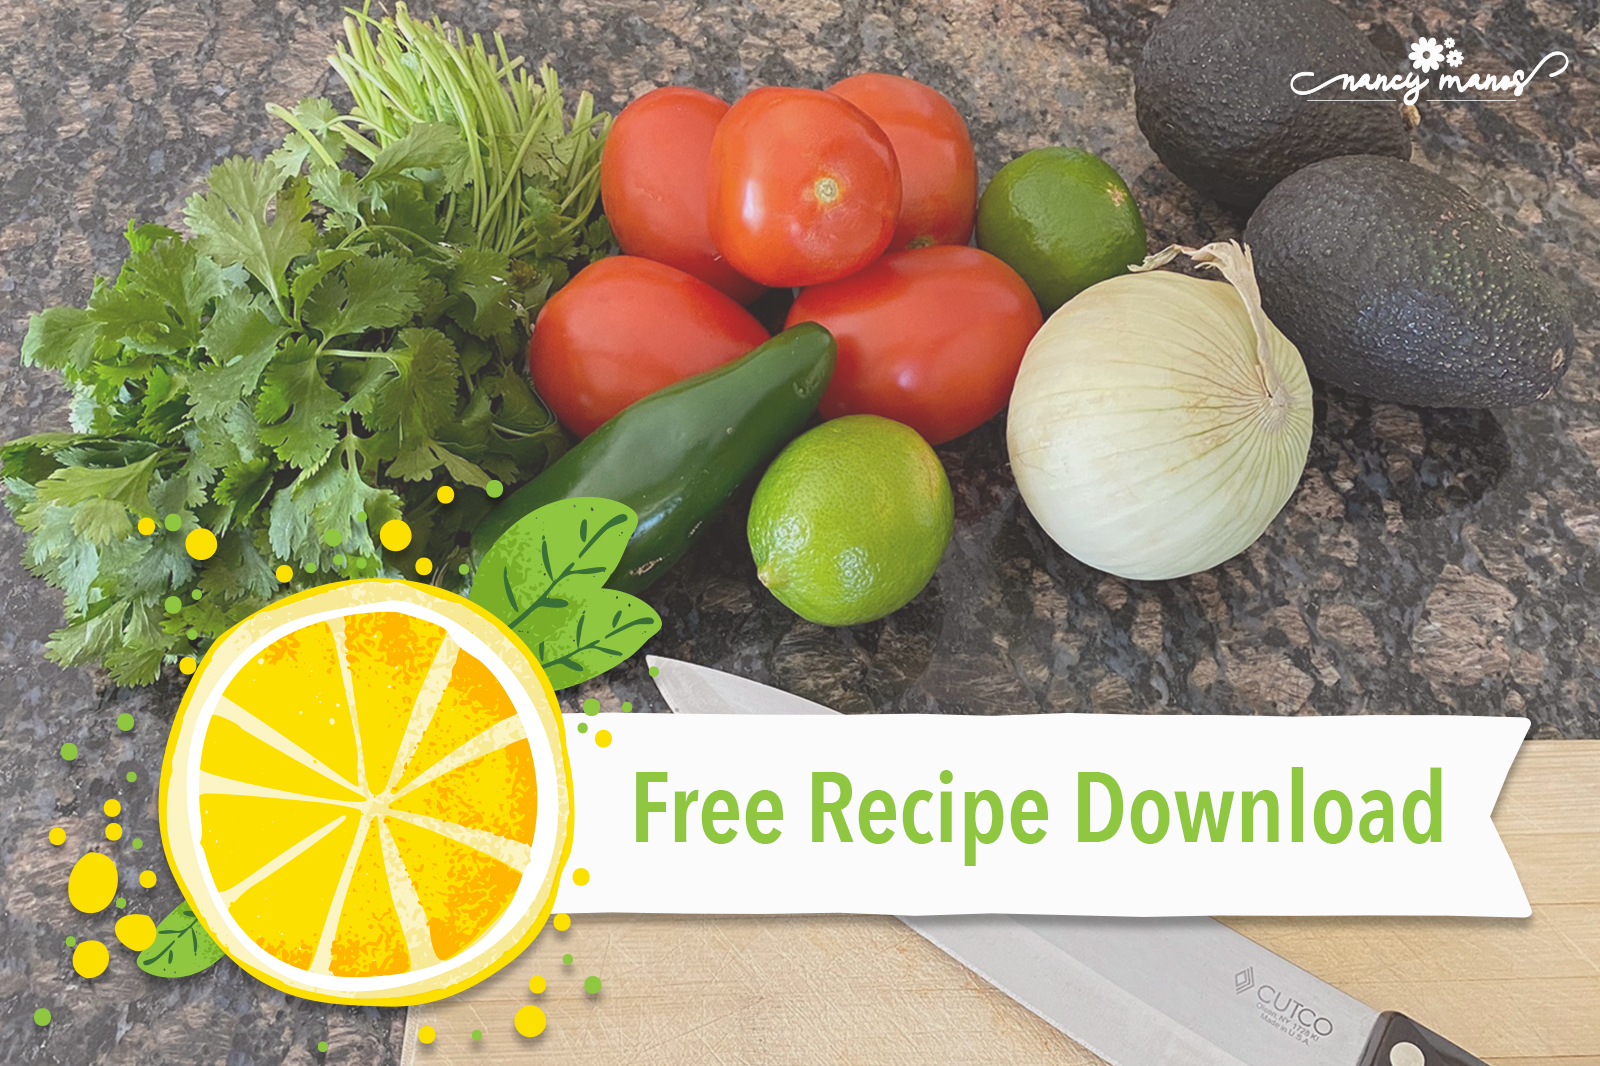 Free Recipe Download - Image - Southwest Recipes